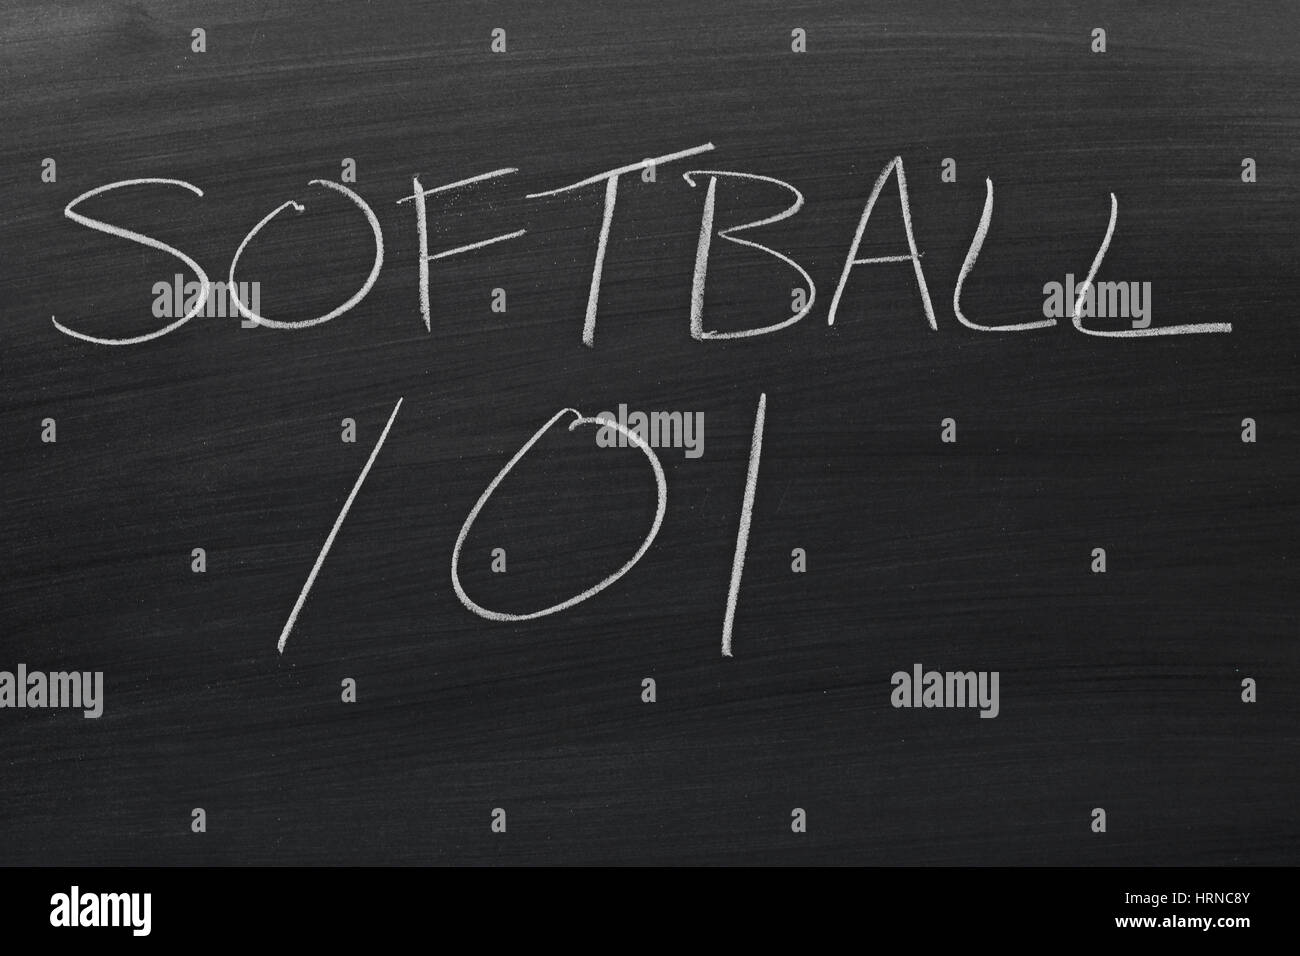 The words 'Softball 101' on a blackboard in chalk - Stock Image